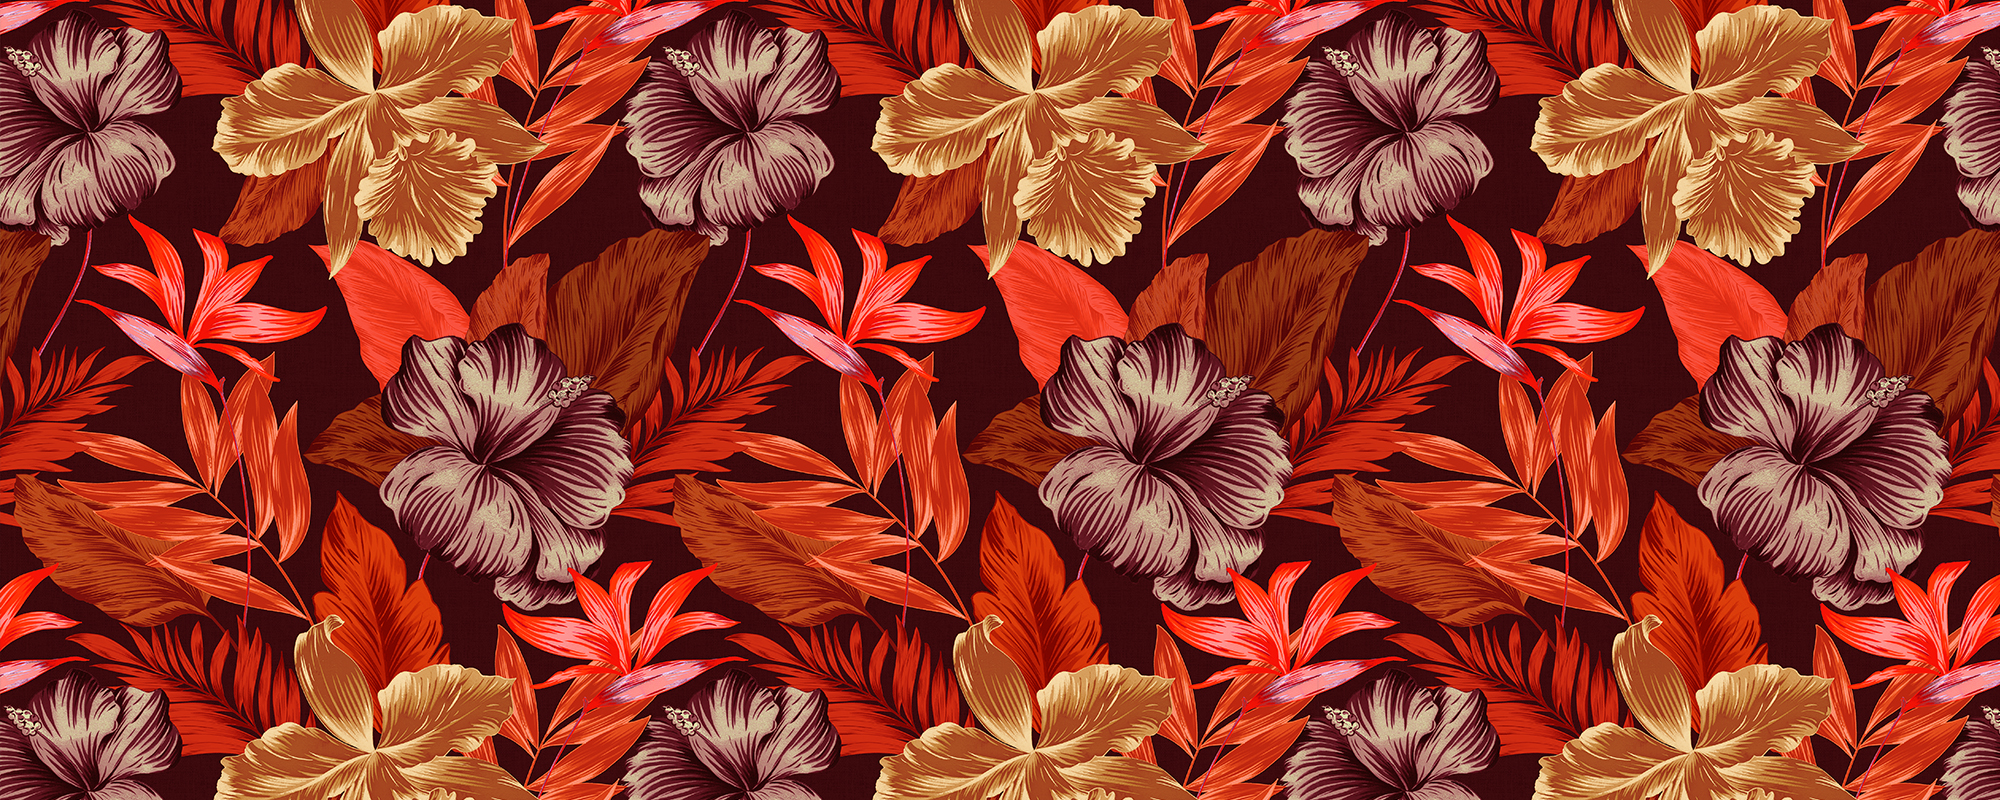 Papier peint tropical rouge inspiration Tiki